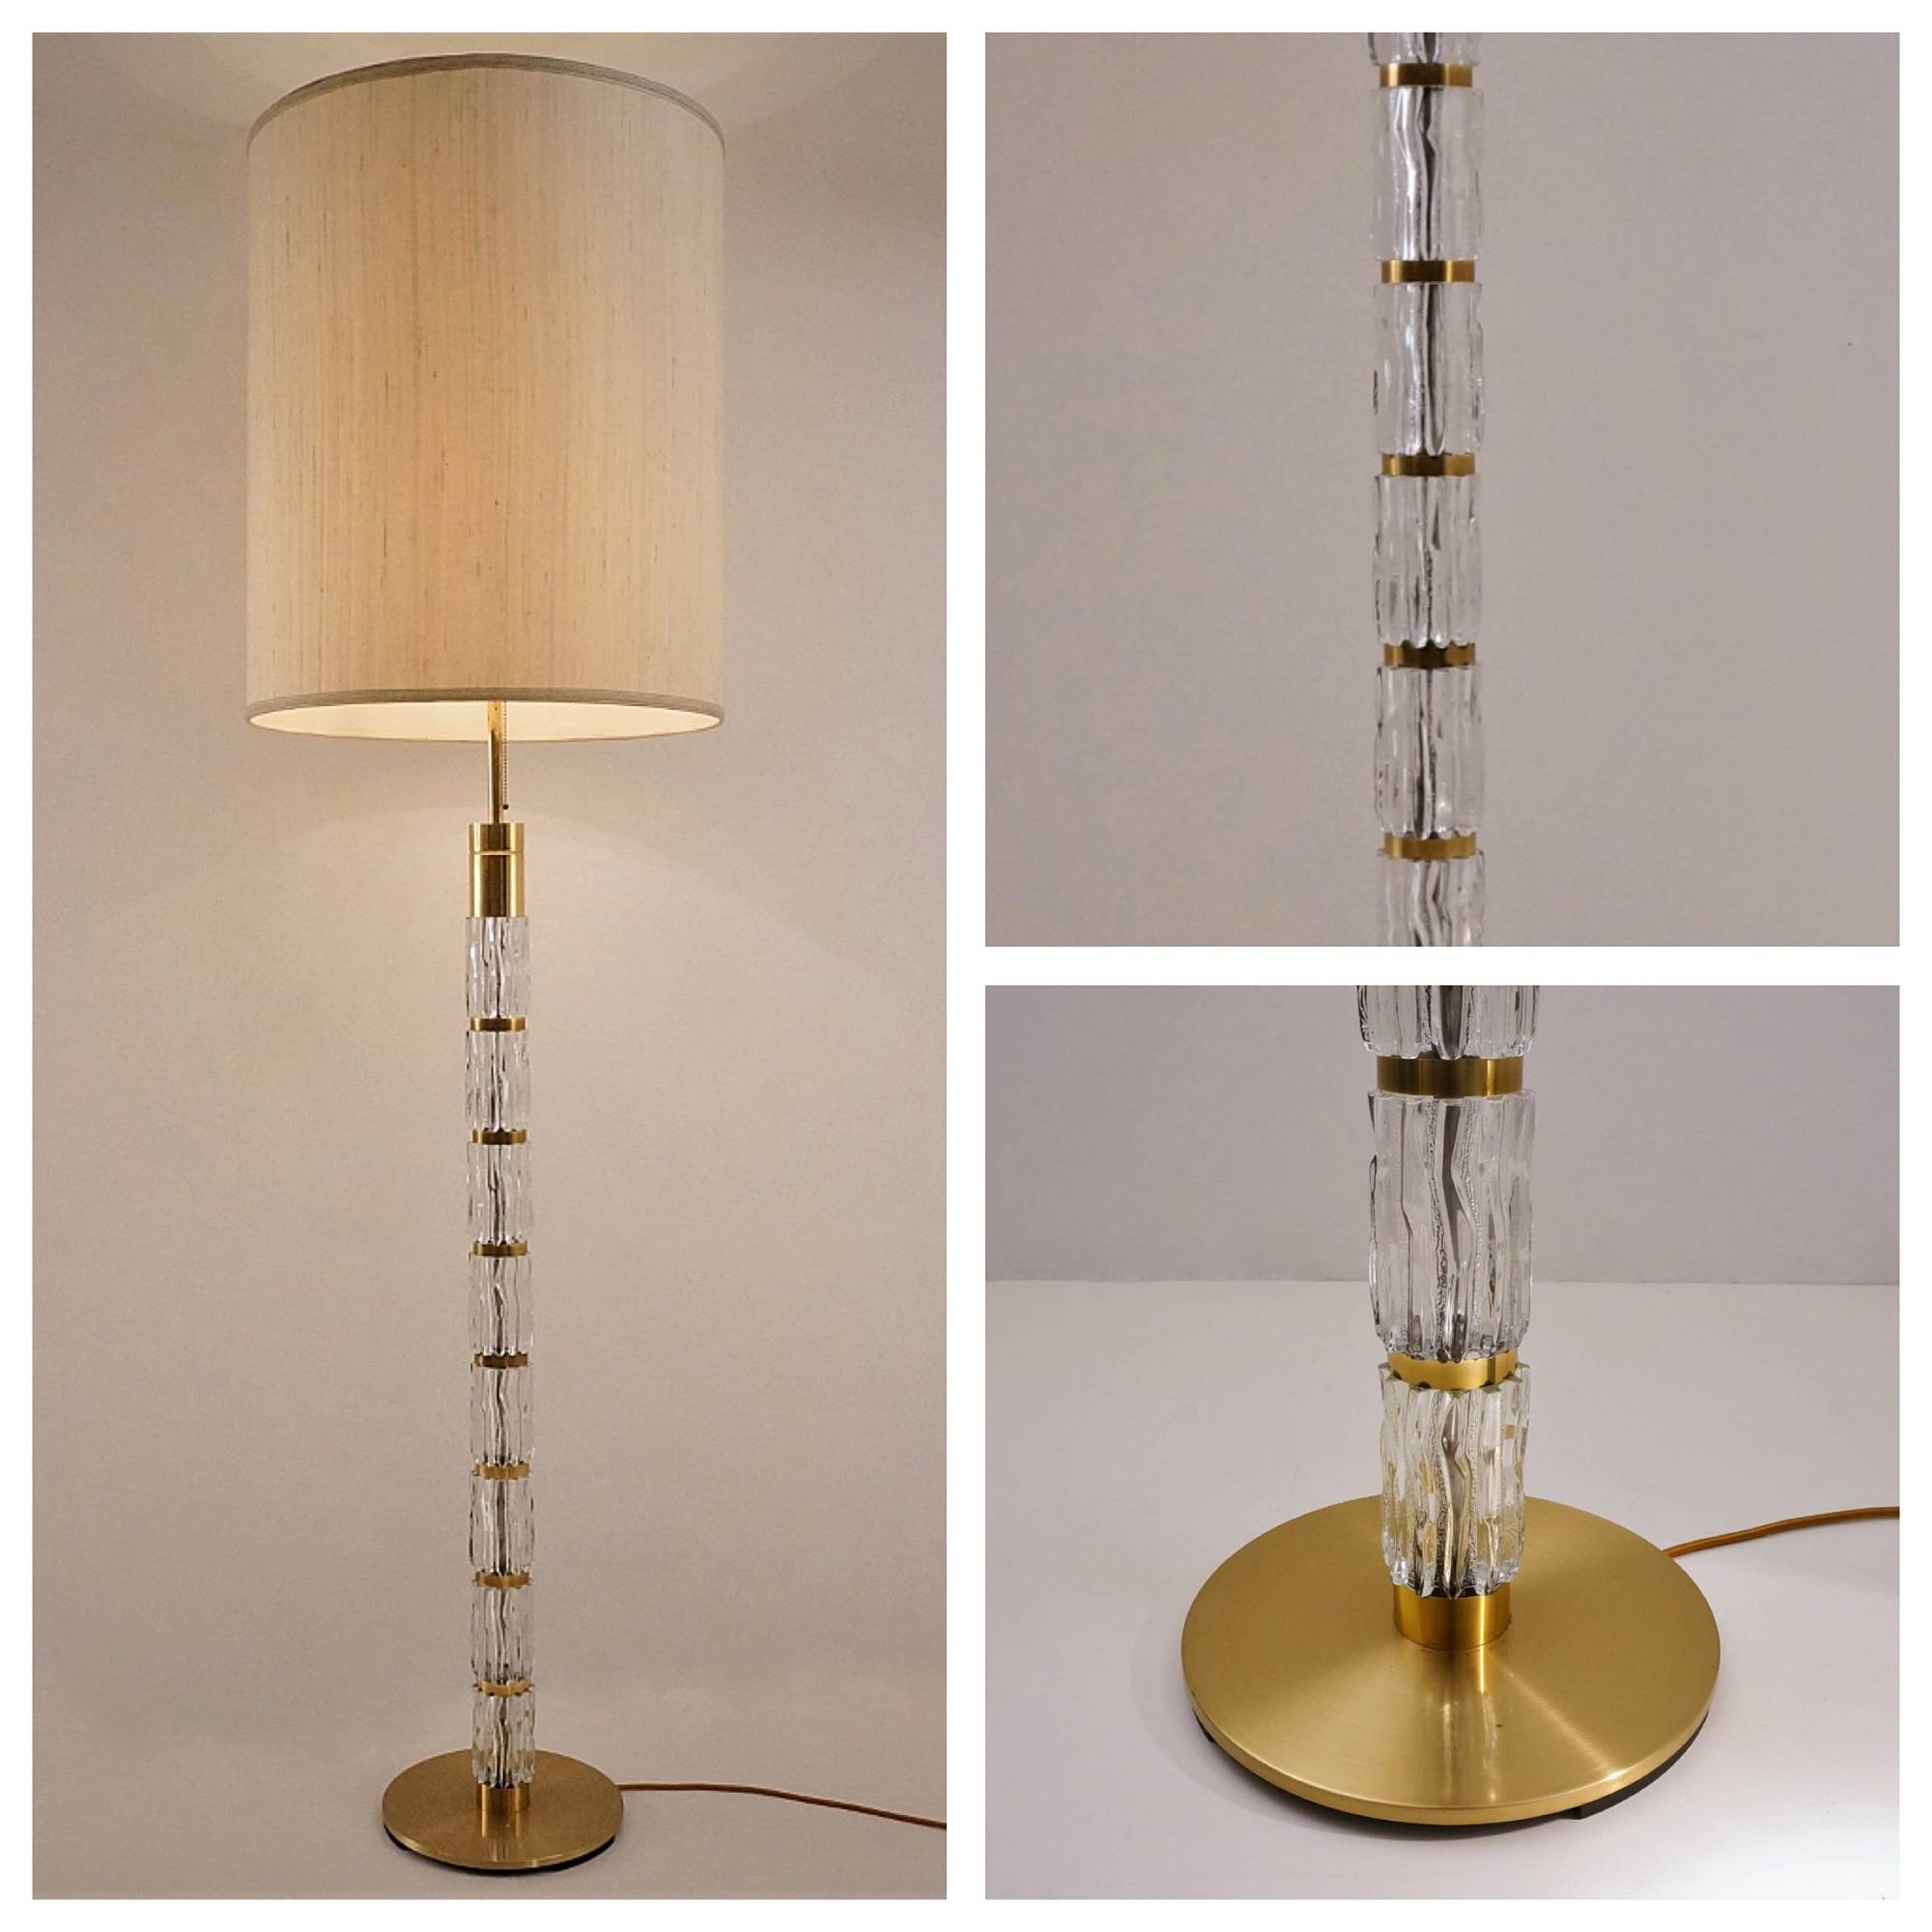 Vintage table lamp in glass and brass